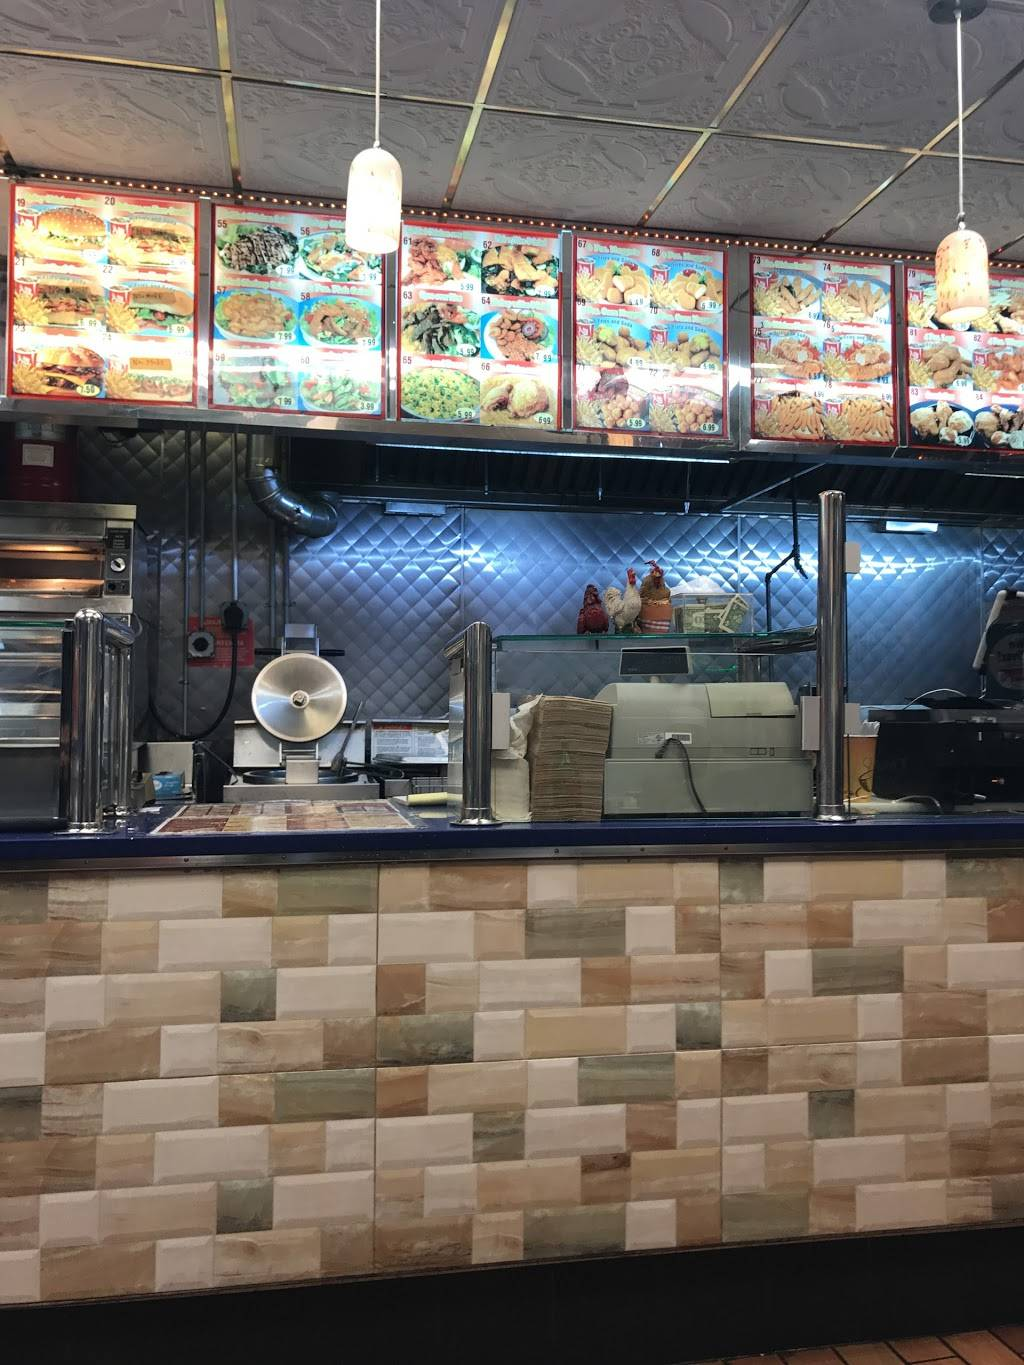 New Texas Chicken & Pizza (Halal) | restaurant | 64-01 Broadway, Woodside, NY 11377, USA | 7186004447 OR +1 718-600-4447